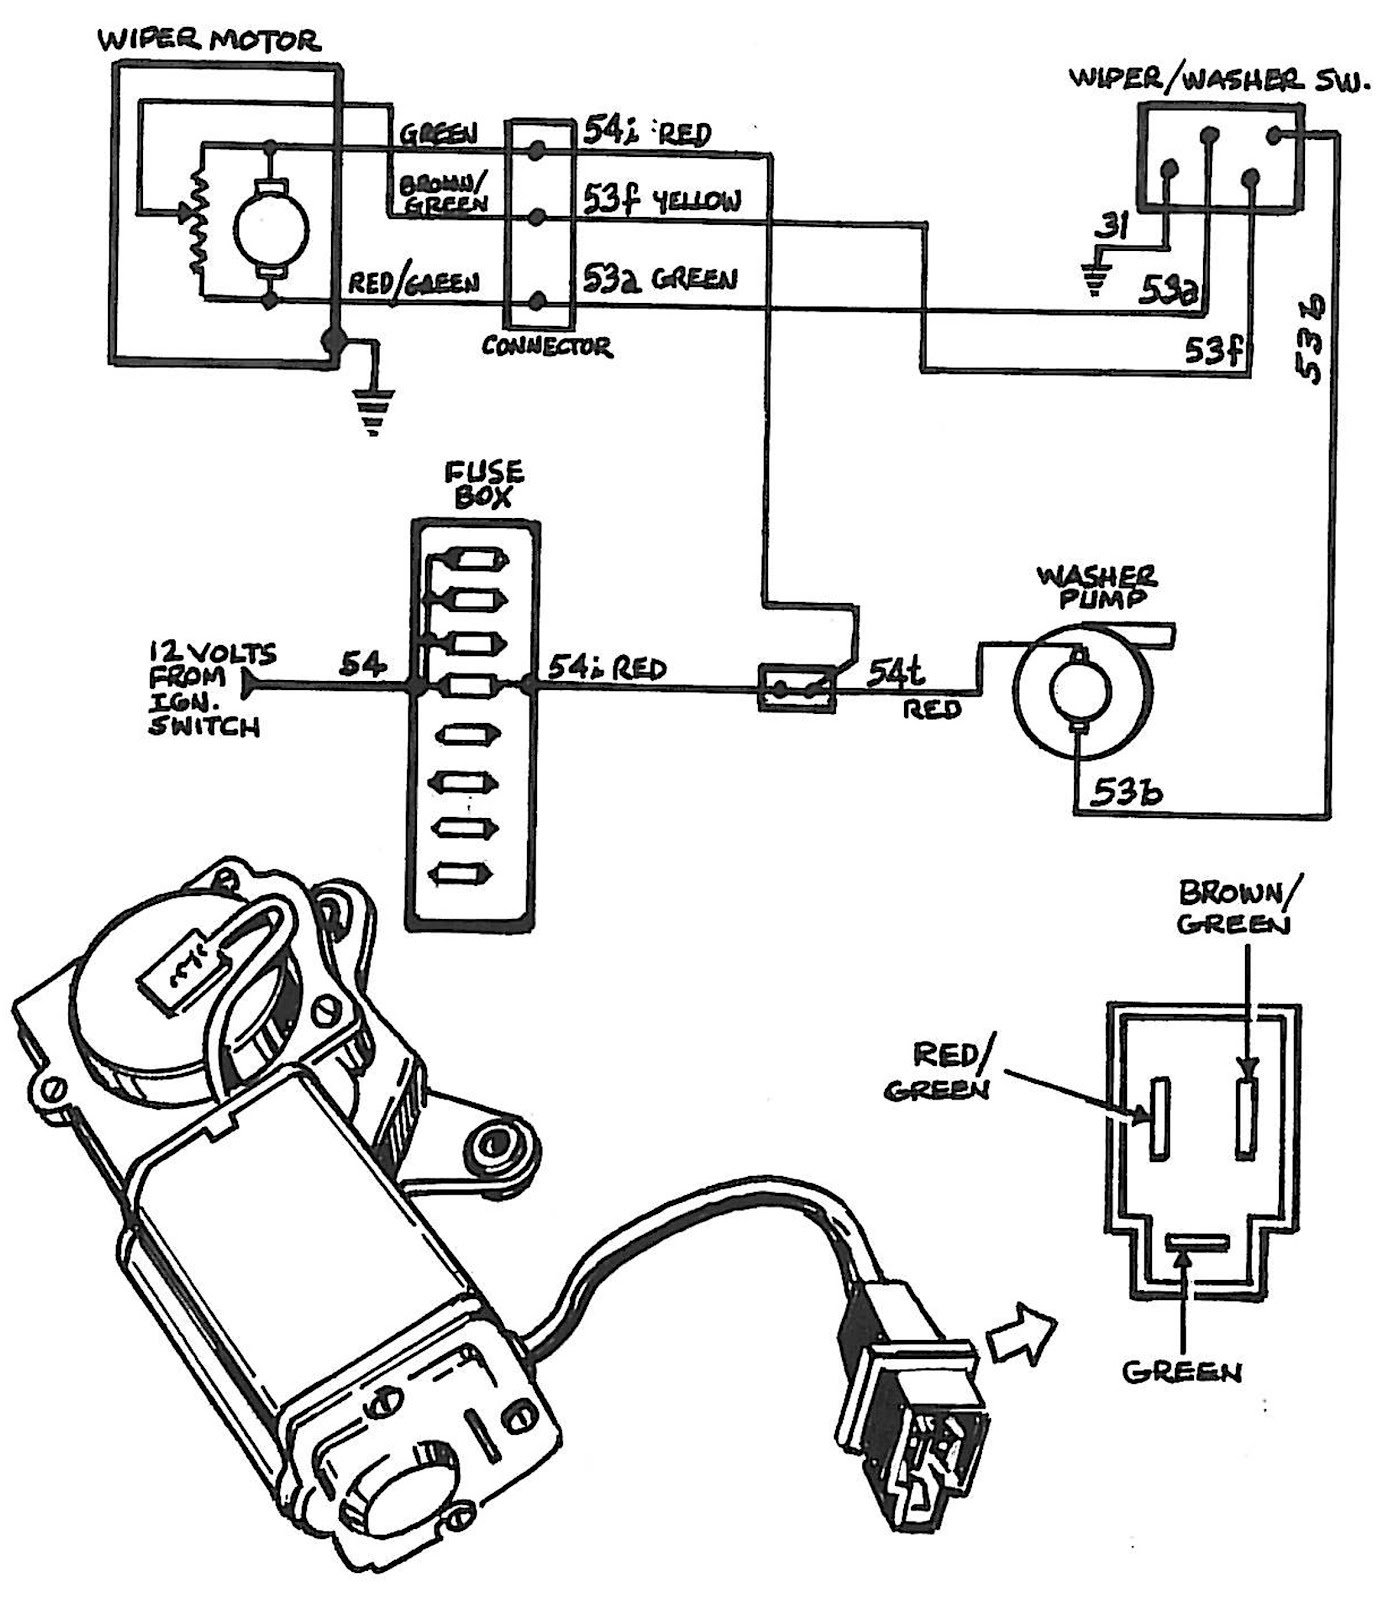 chevy windshield wiper motor wiring diagram CgTTPww trico wiper motor wiring diagram windshield wiper motor diagram 1968 corvette wiper motor wiring diagram at bayanpartner.co